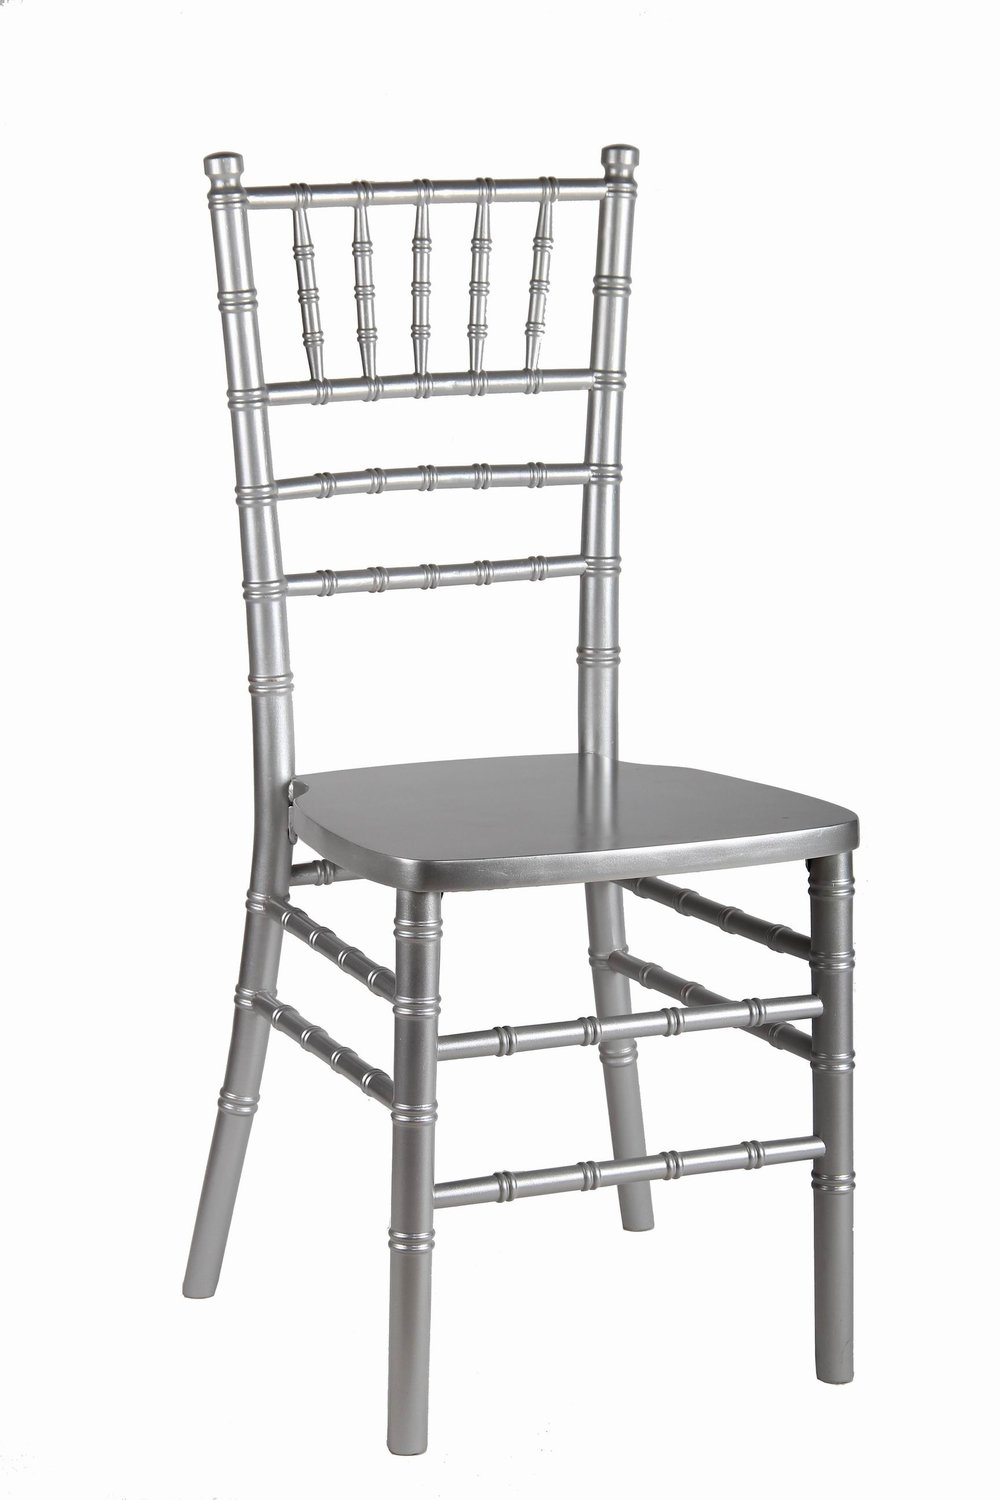 chiavari-chairs-for-sale-best-of-sashes-for-tiffany-chairs-sales-of-chiavari-chairs-for-sale.jpg